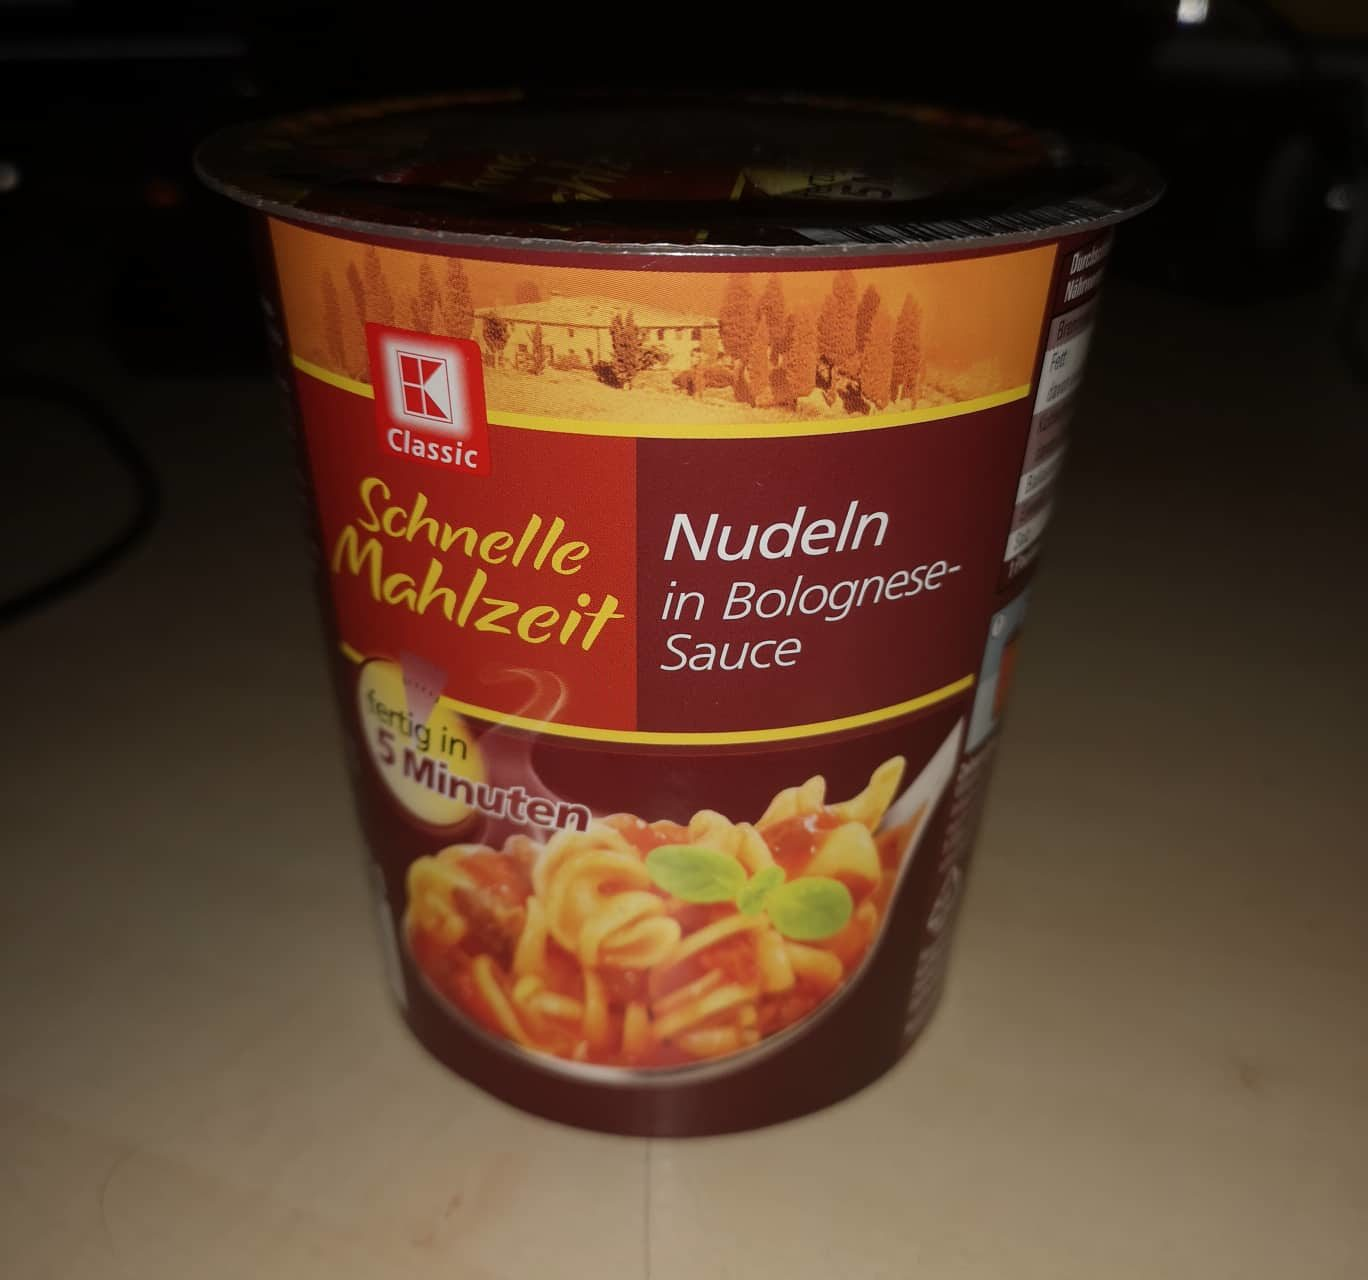 """#1649: K-Classic """"Schnelle Mahlzeit"""" Nudeln in Bolognese-Sauce (2019)"""